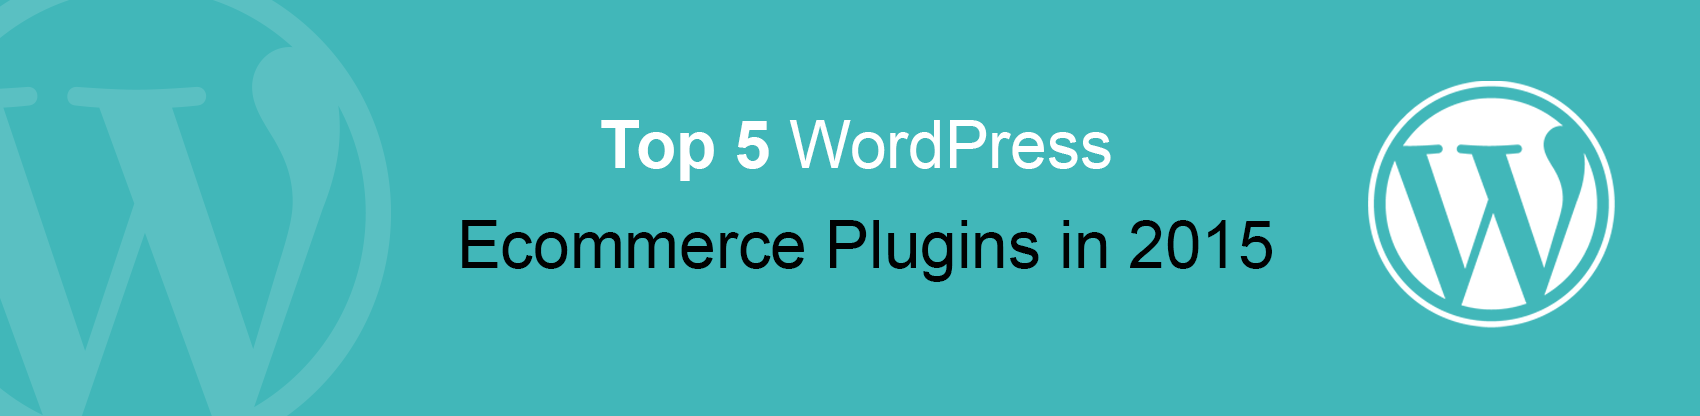 Top 5 WordPress Ecommerce Plugins